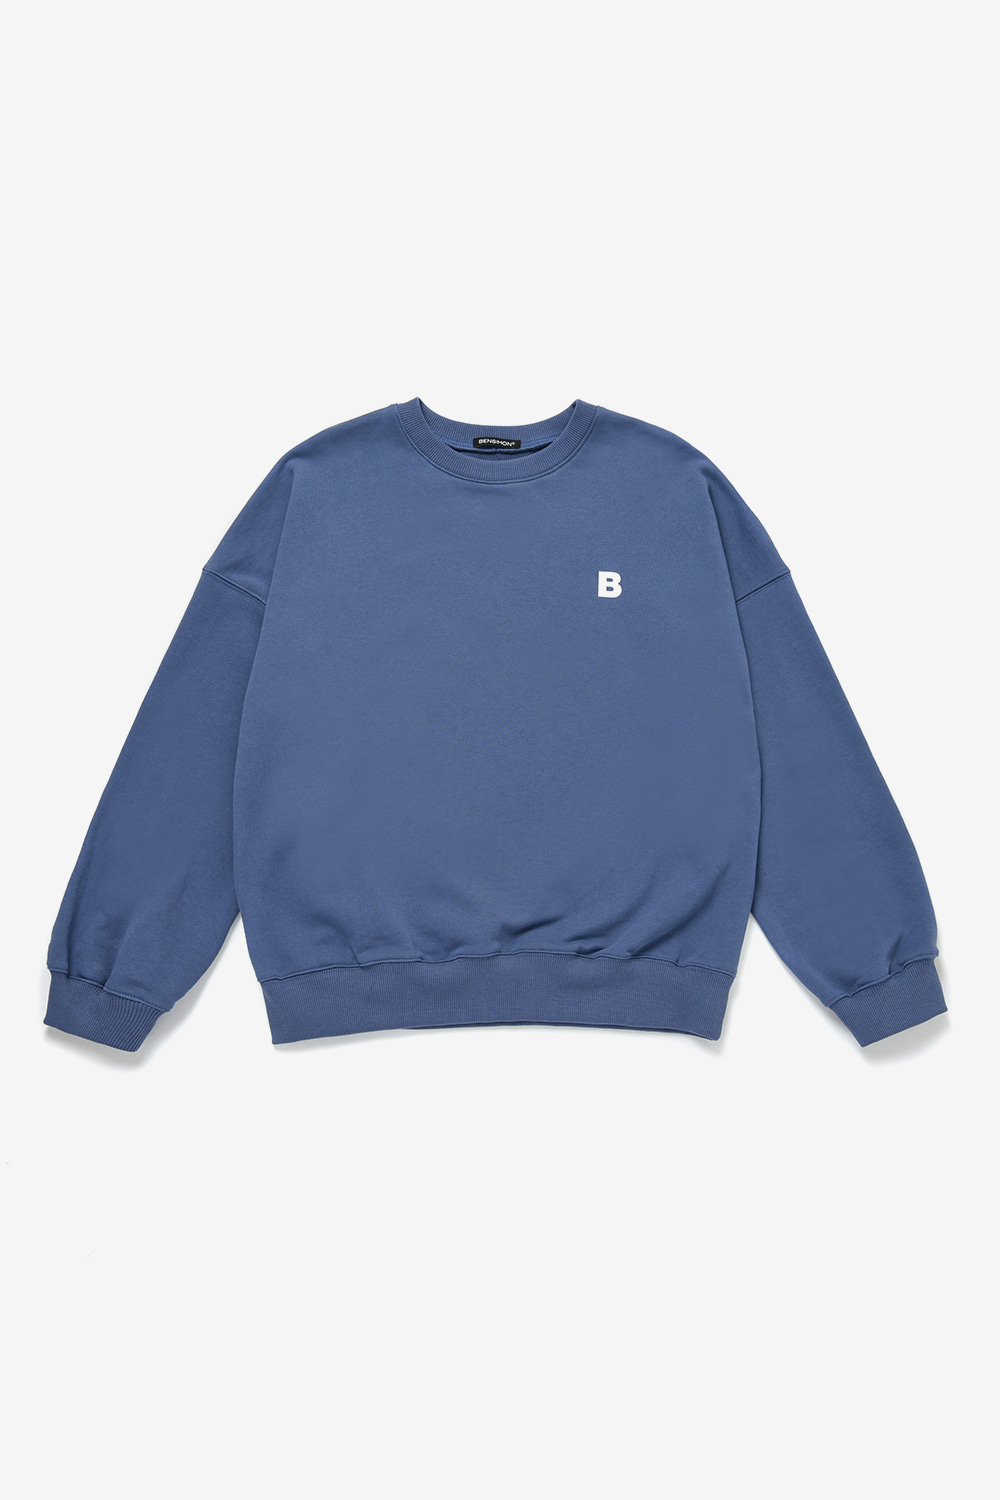 B Logo Over MTM(unisex)_Blue Grey BS0SMT207BL00F